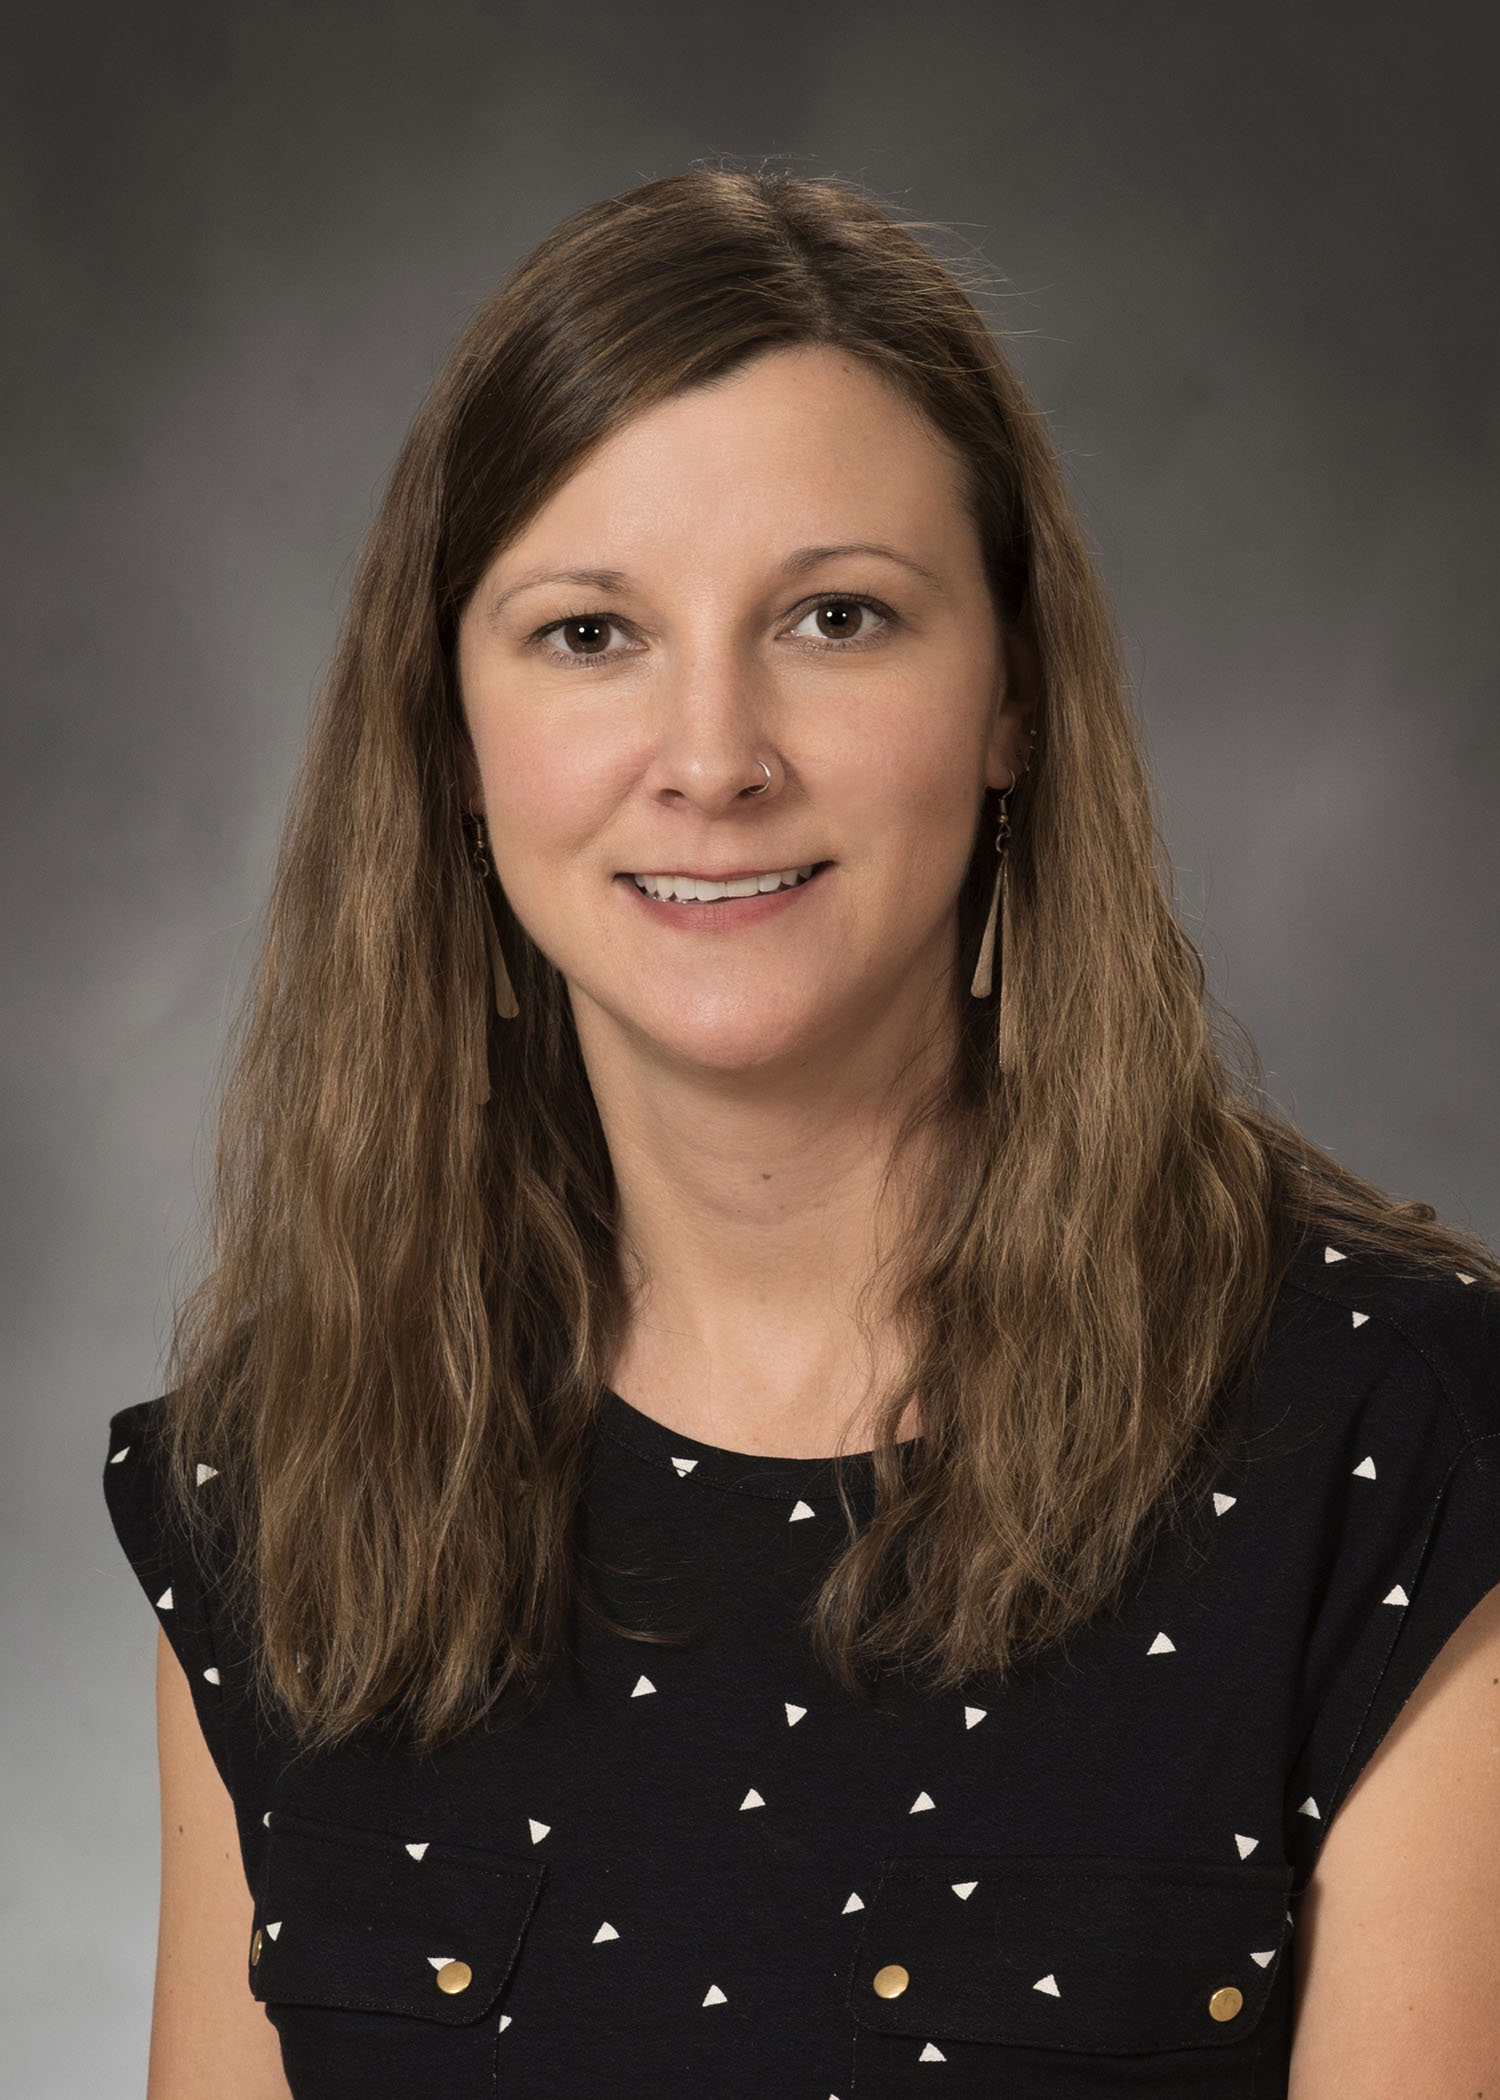 Photo of Rebekah Byrd, Ph.D, NCC, LPC